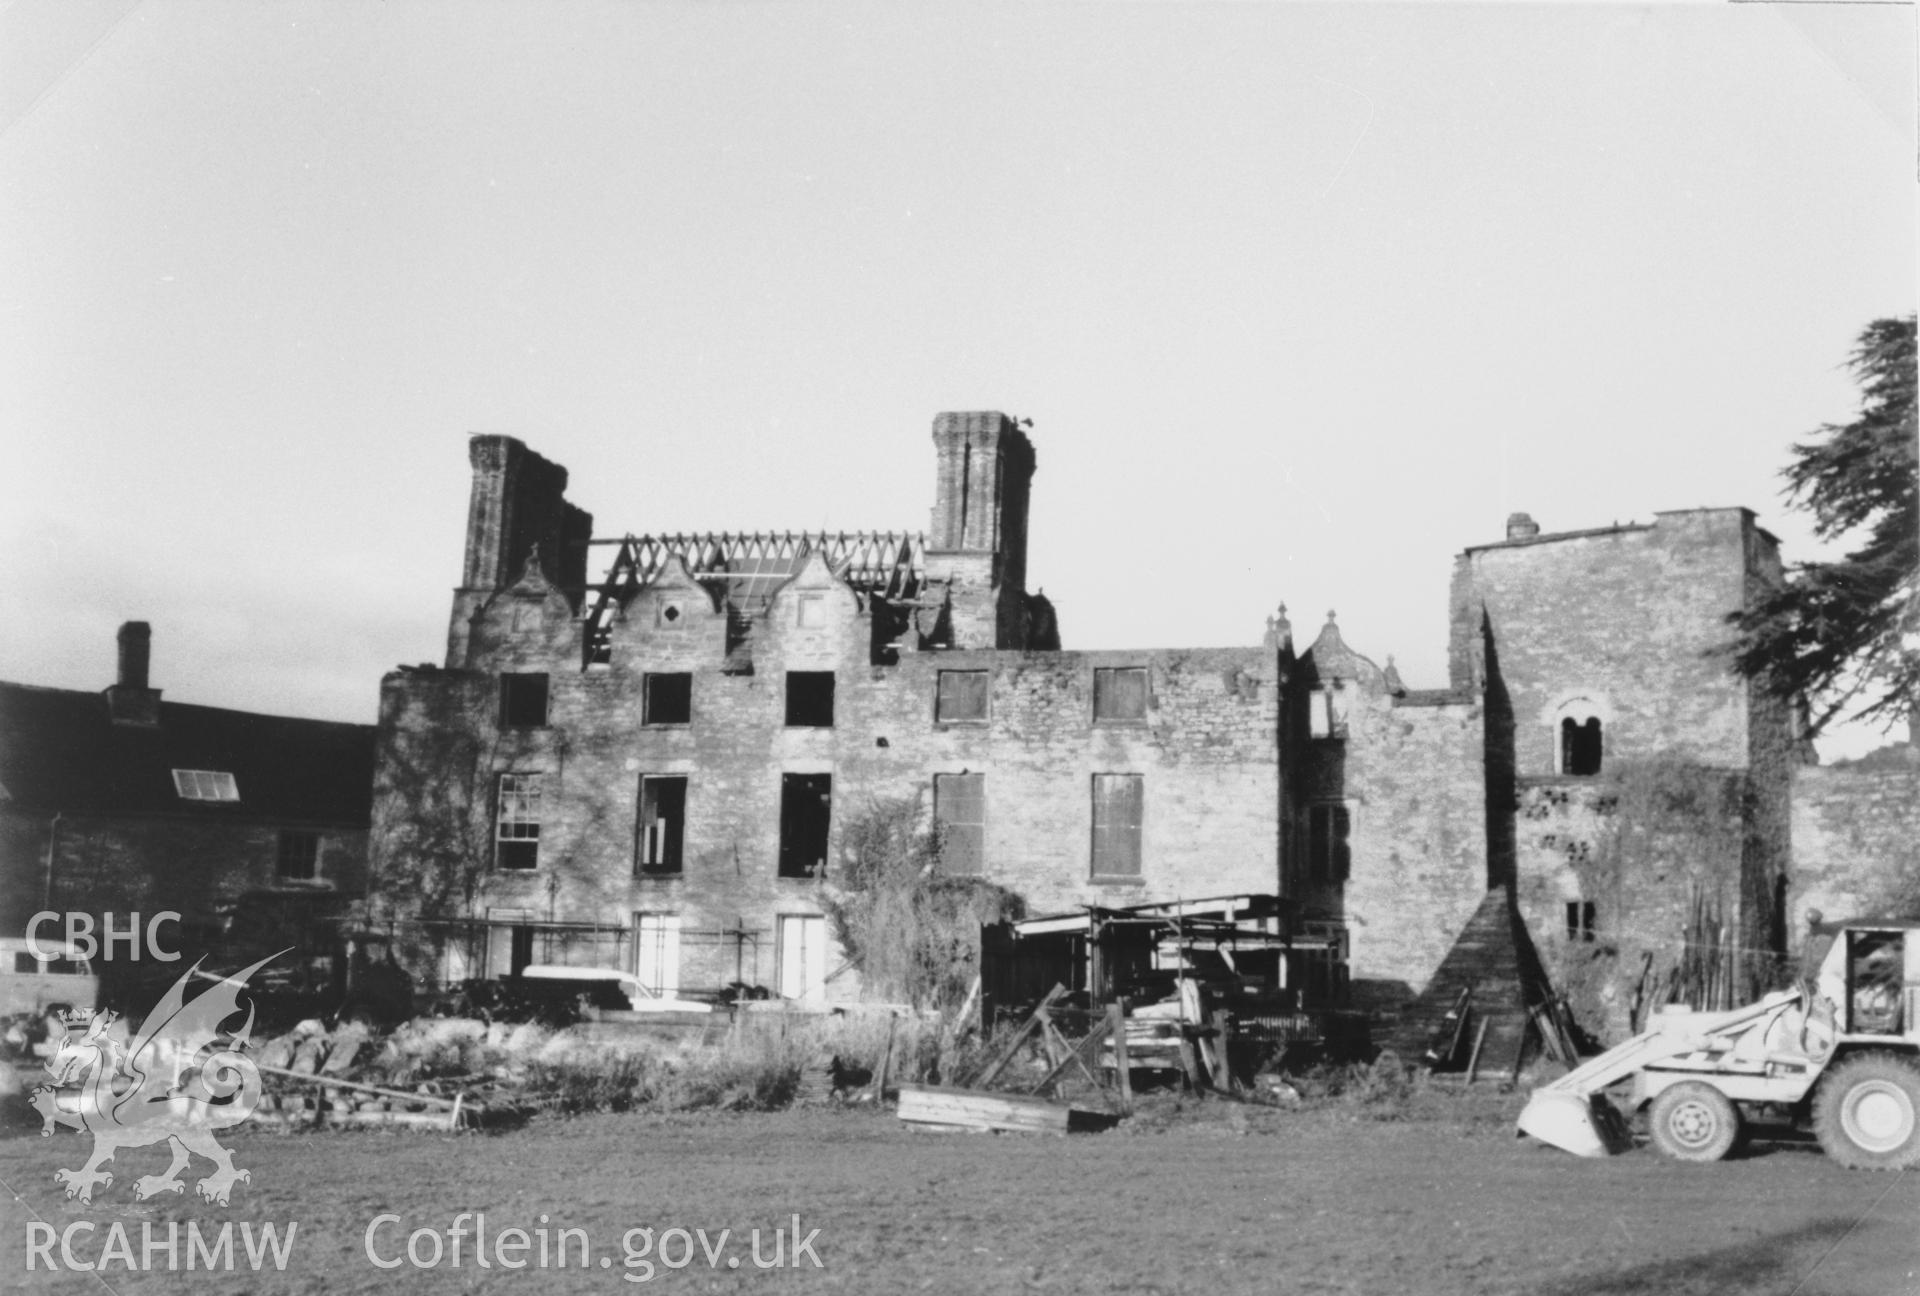 View of  Castle House, Hay Castle probably taken after the 1977 fire. Black and white photograph copied from a photo loaned for copying by Thomas Lloyd.